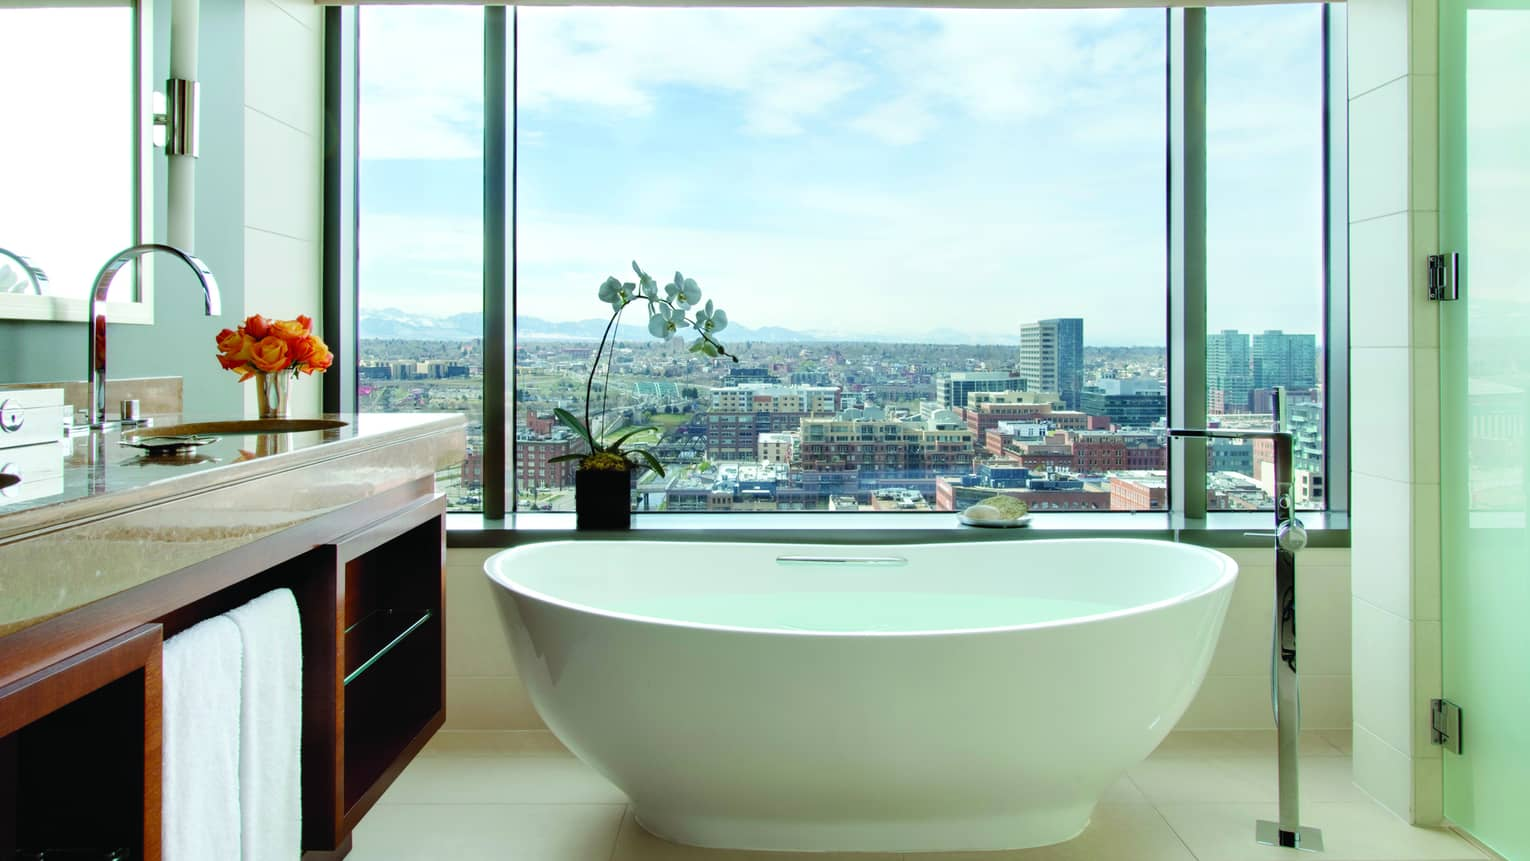 Modern white freestanding tub in marble bathroom by large window, city views